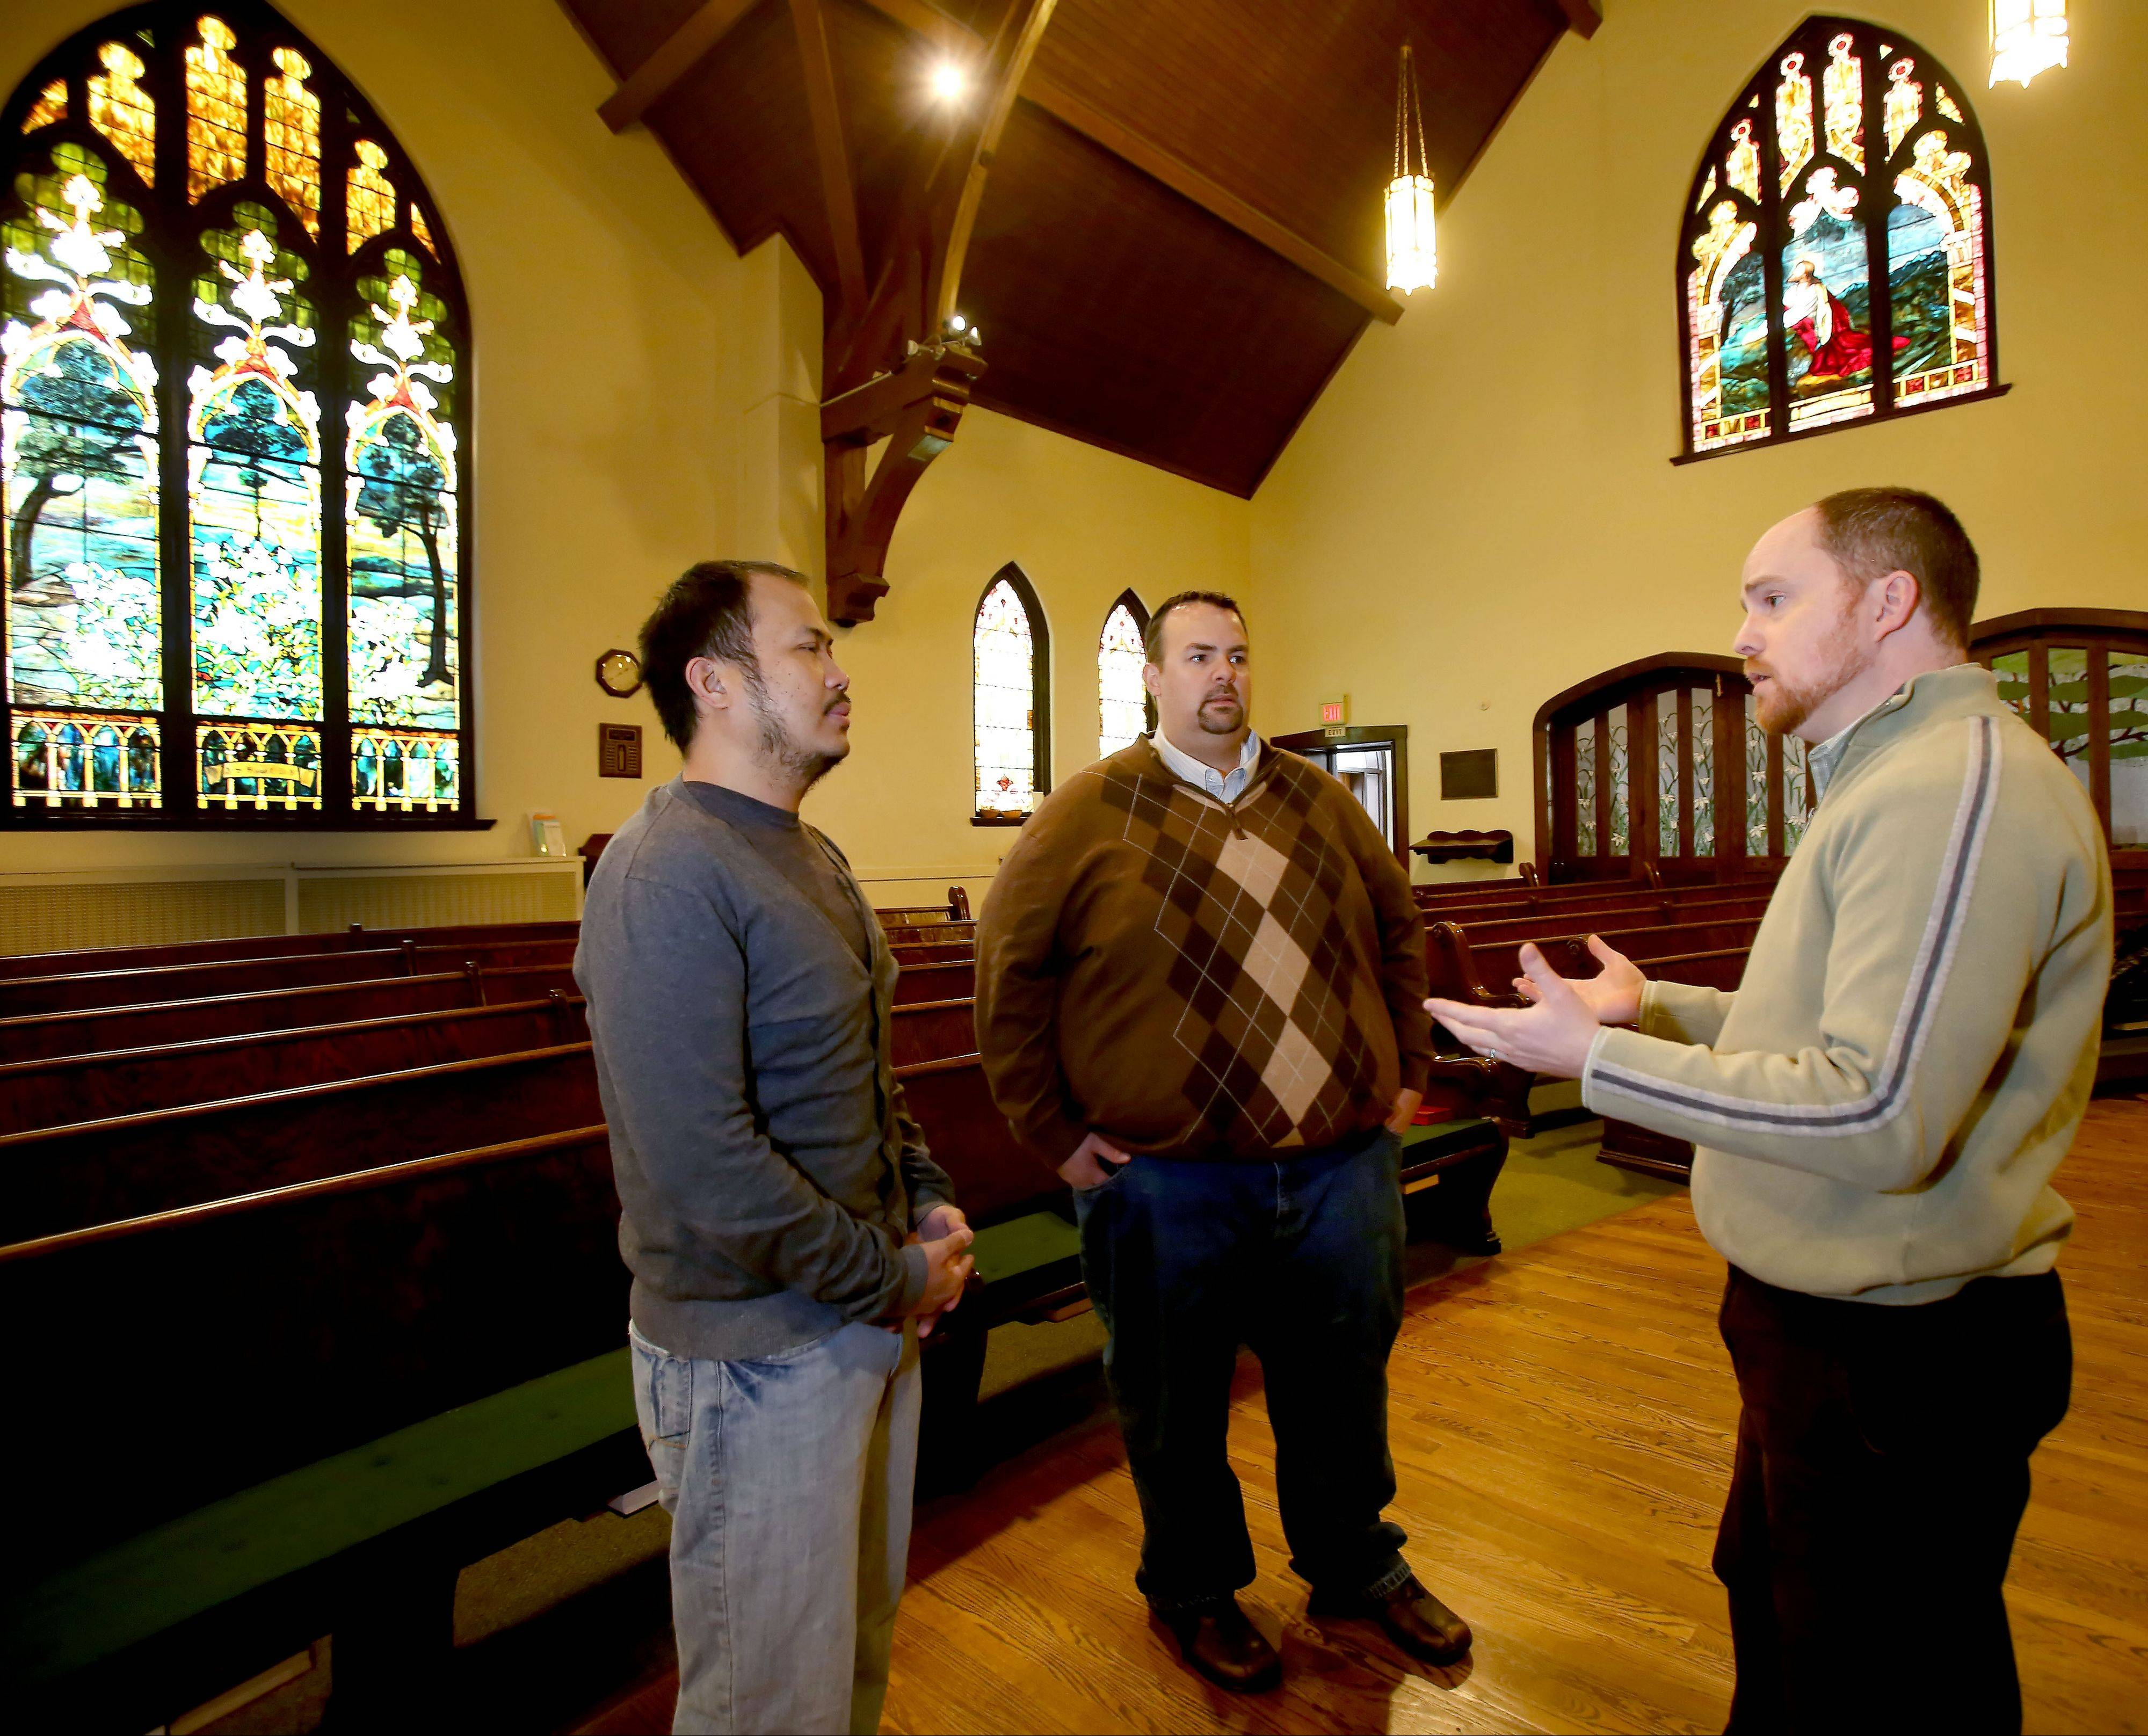 Jovi Tomaneng, left, and John Stilp, center, of Naperville discuss wedding plans with their pastor, the Rev. Mark Winters at First Congregational United Church of Christ in Naperville.